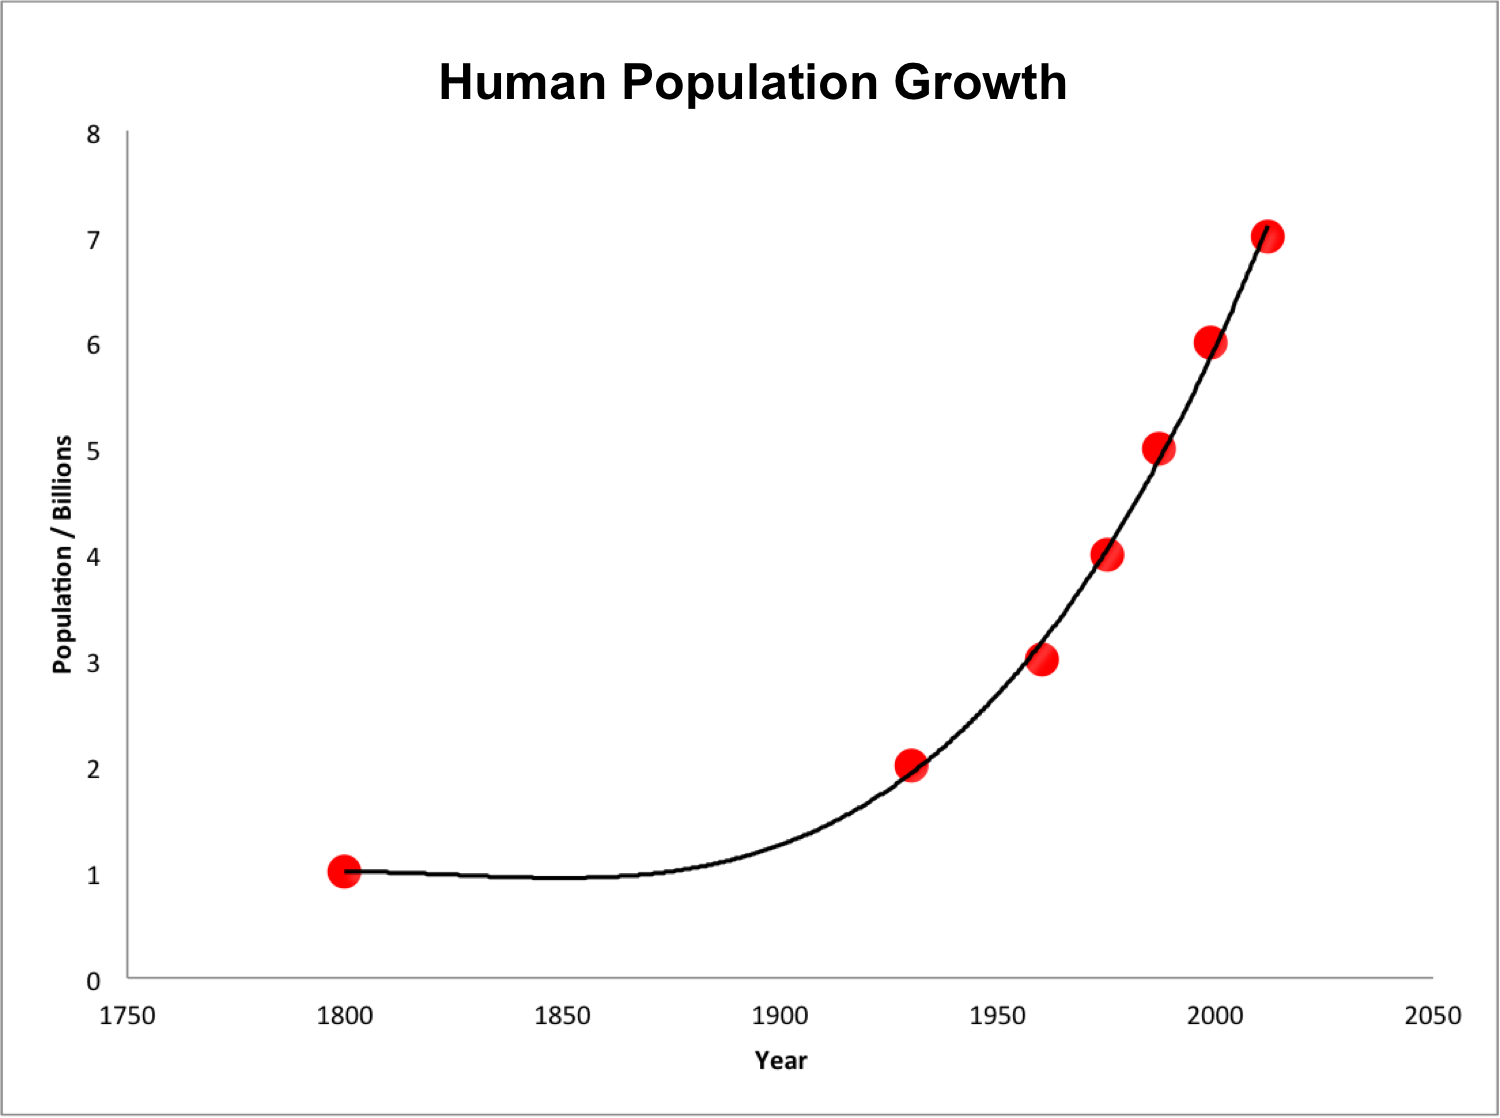 human_population_growth_from_1800_to_2000png